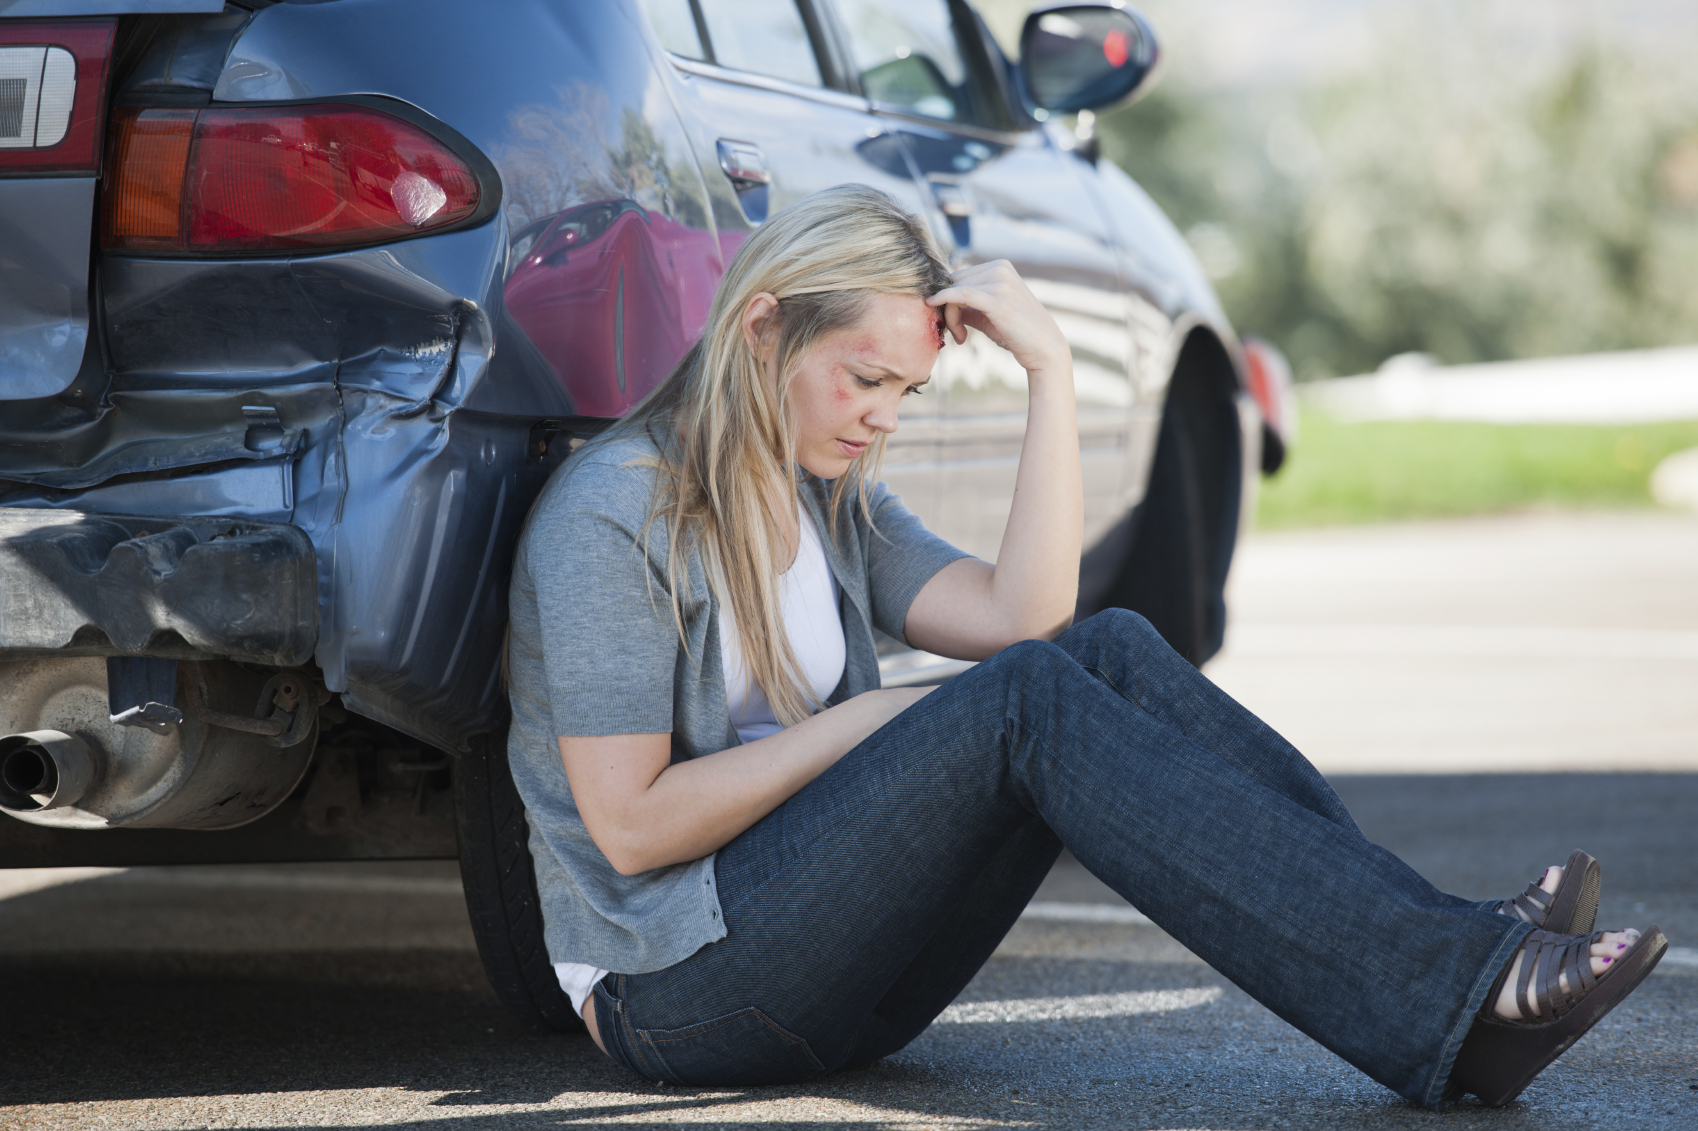 Tips for preventing an accident while driving